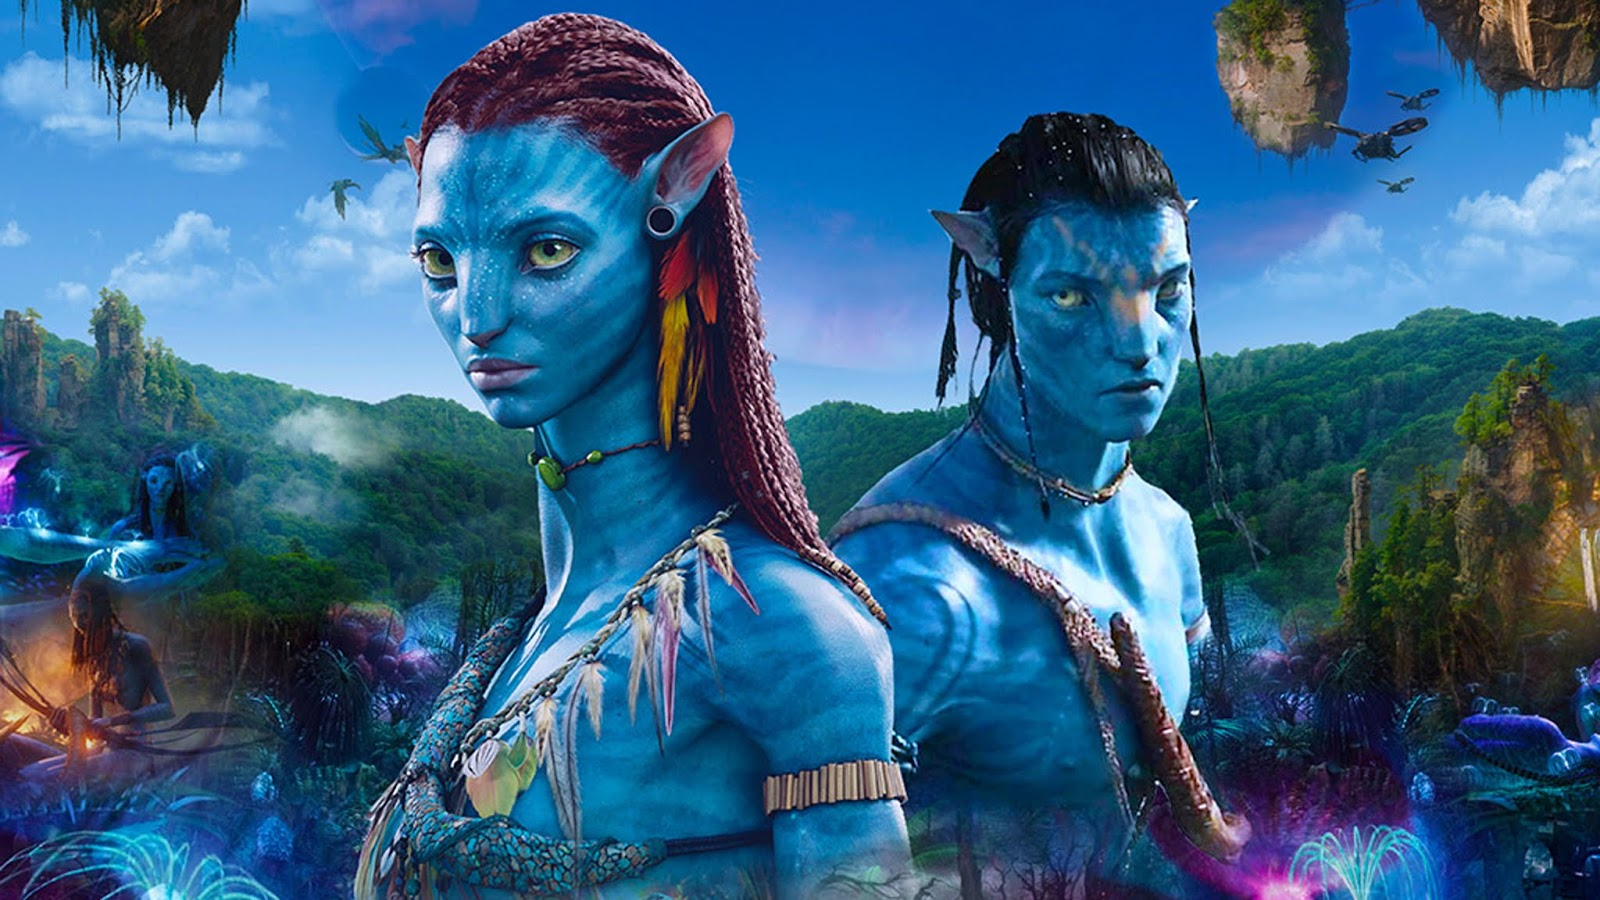 Avatar 2 Full Movie In Hindi Free Download Laysigower Inspired